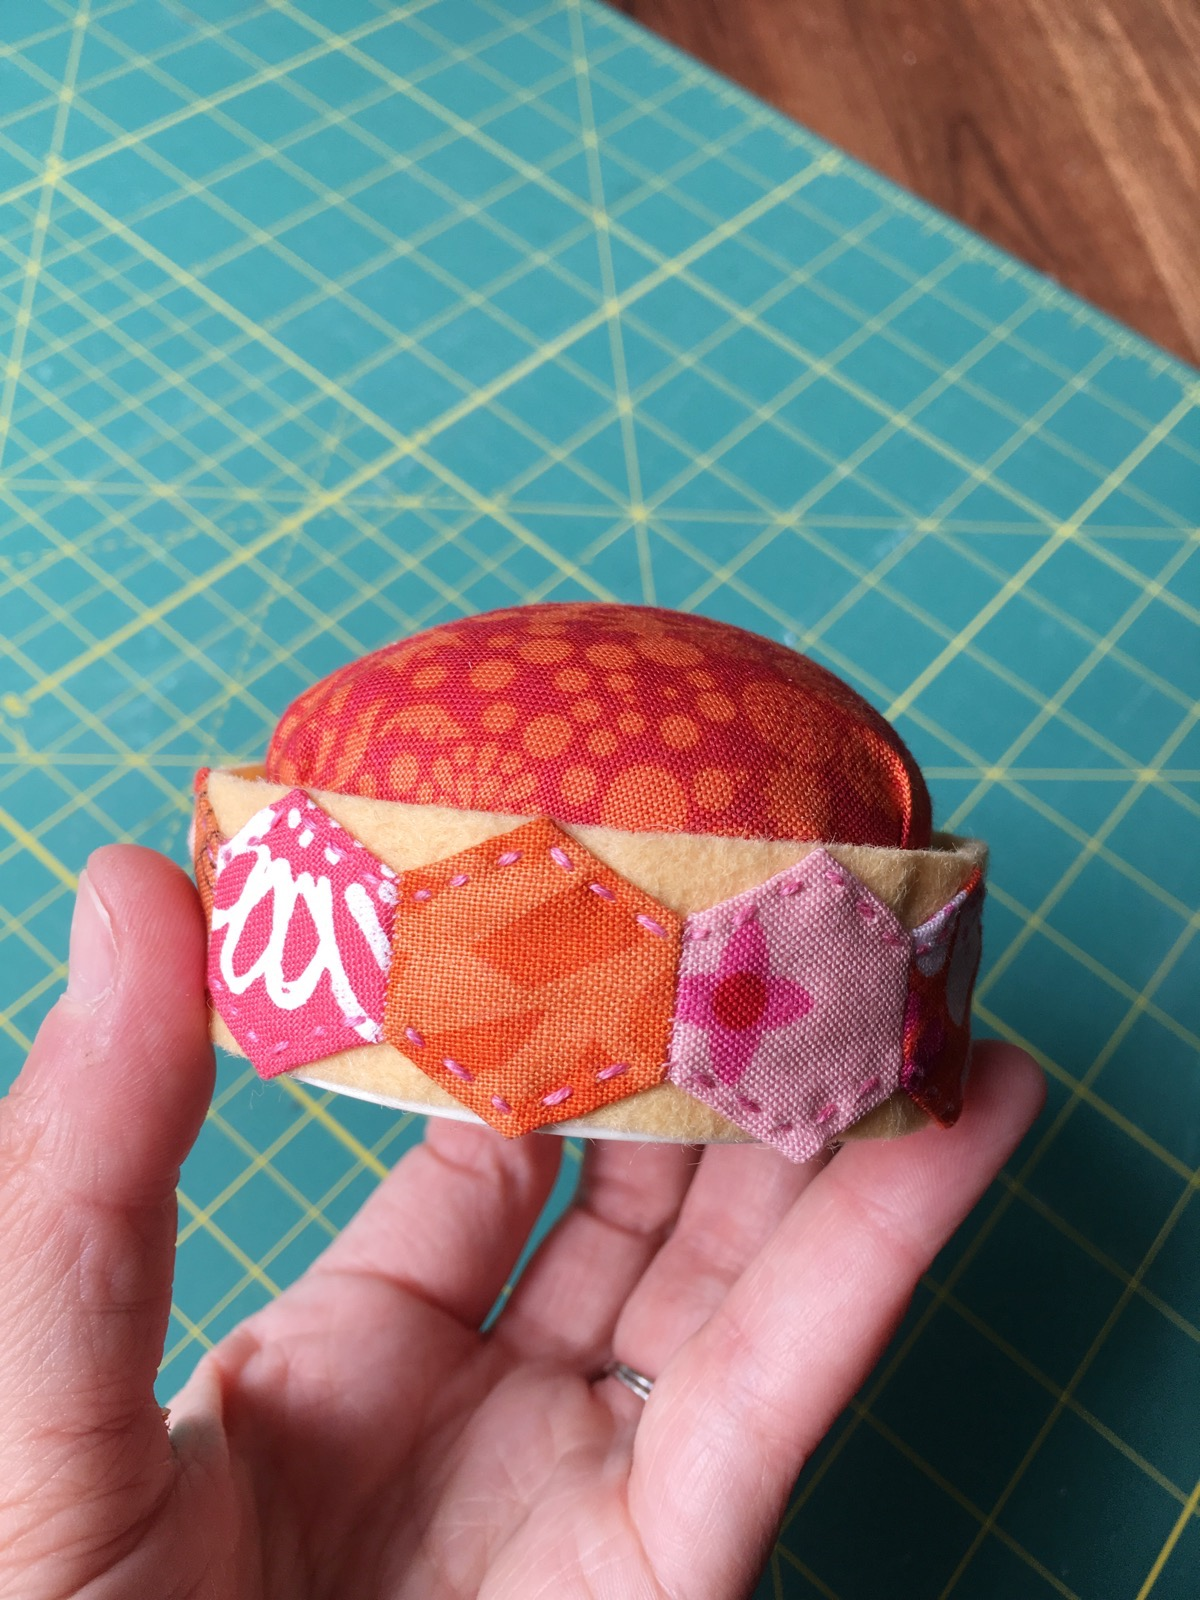 Hexie Pincushion at Clover from Hugs are Fun